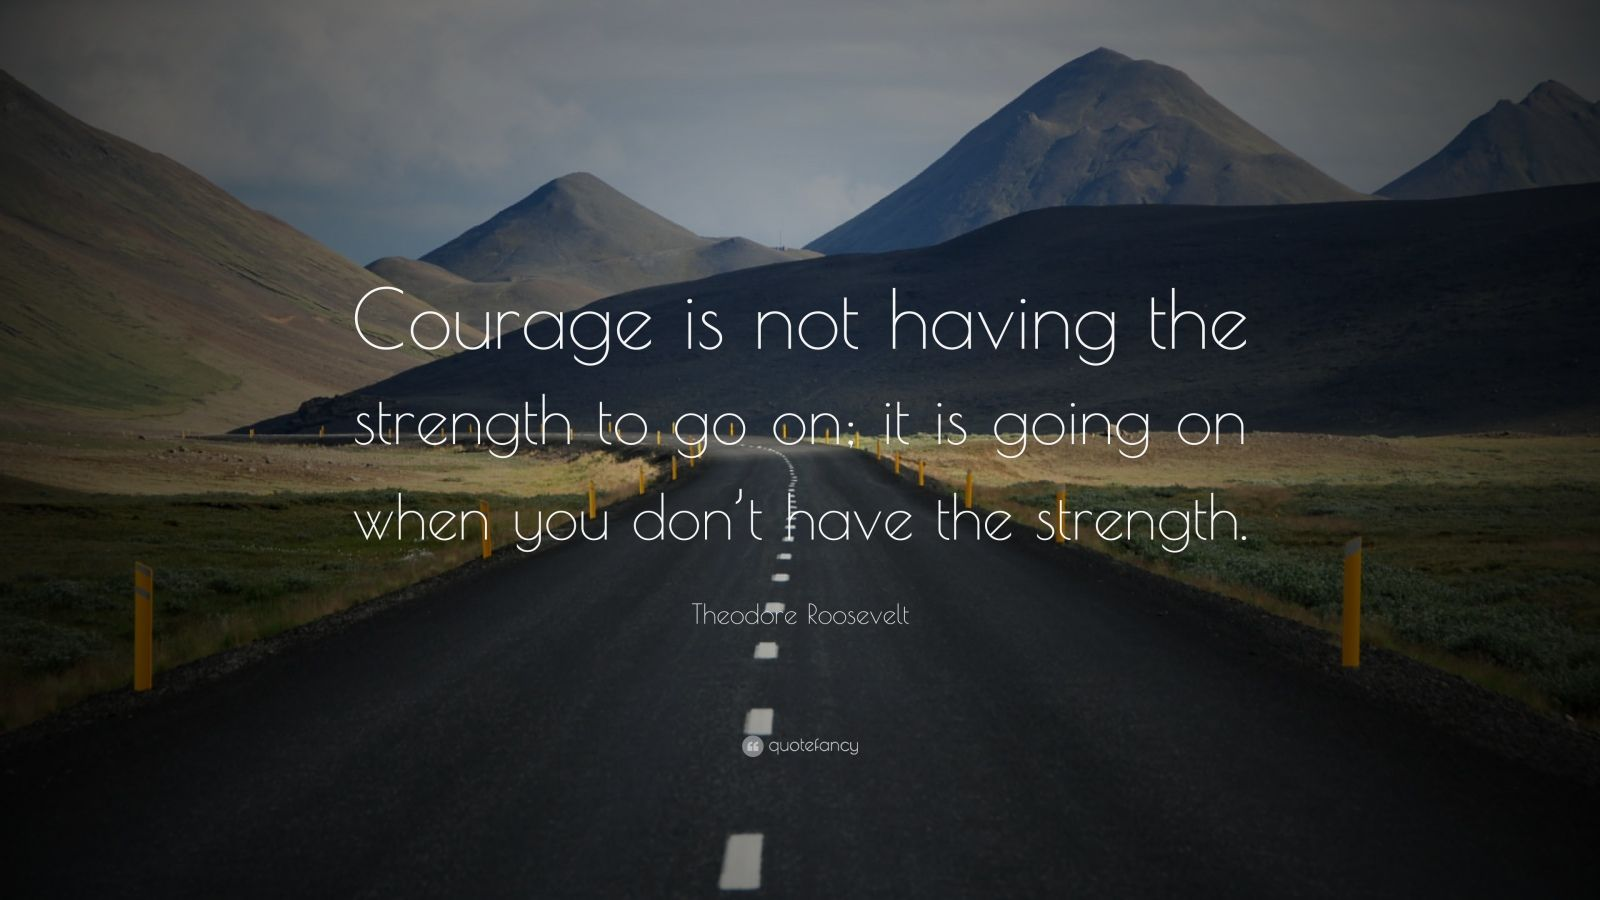 Change Quote Wallpaper Theodore Roosevelt Quote Courage Is Not Having The